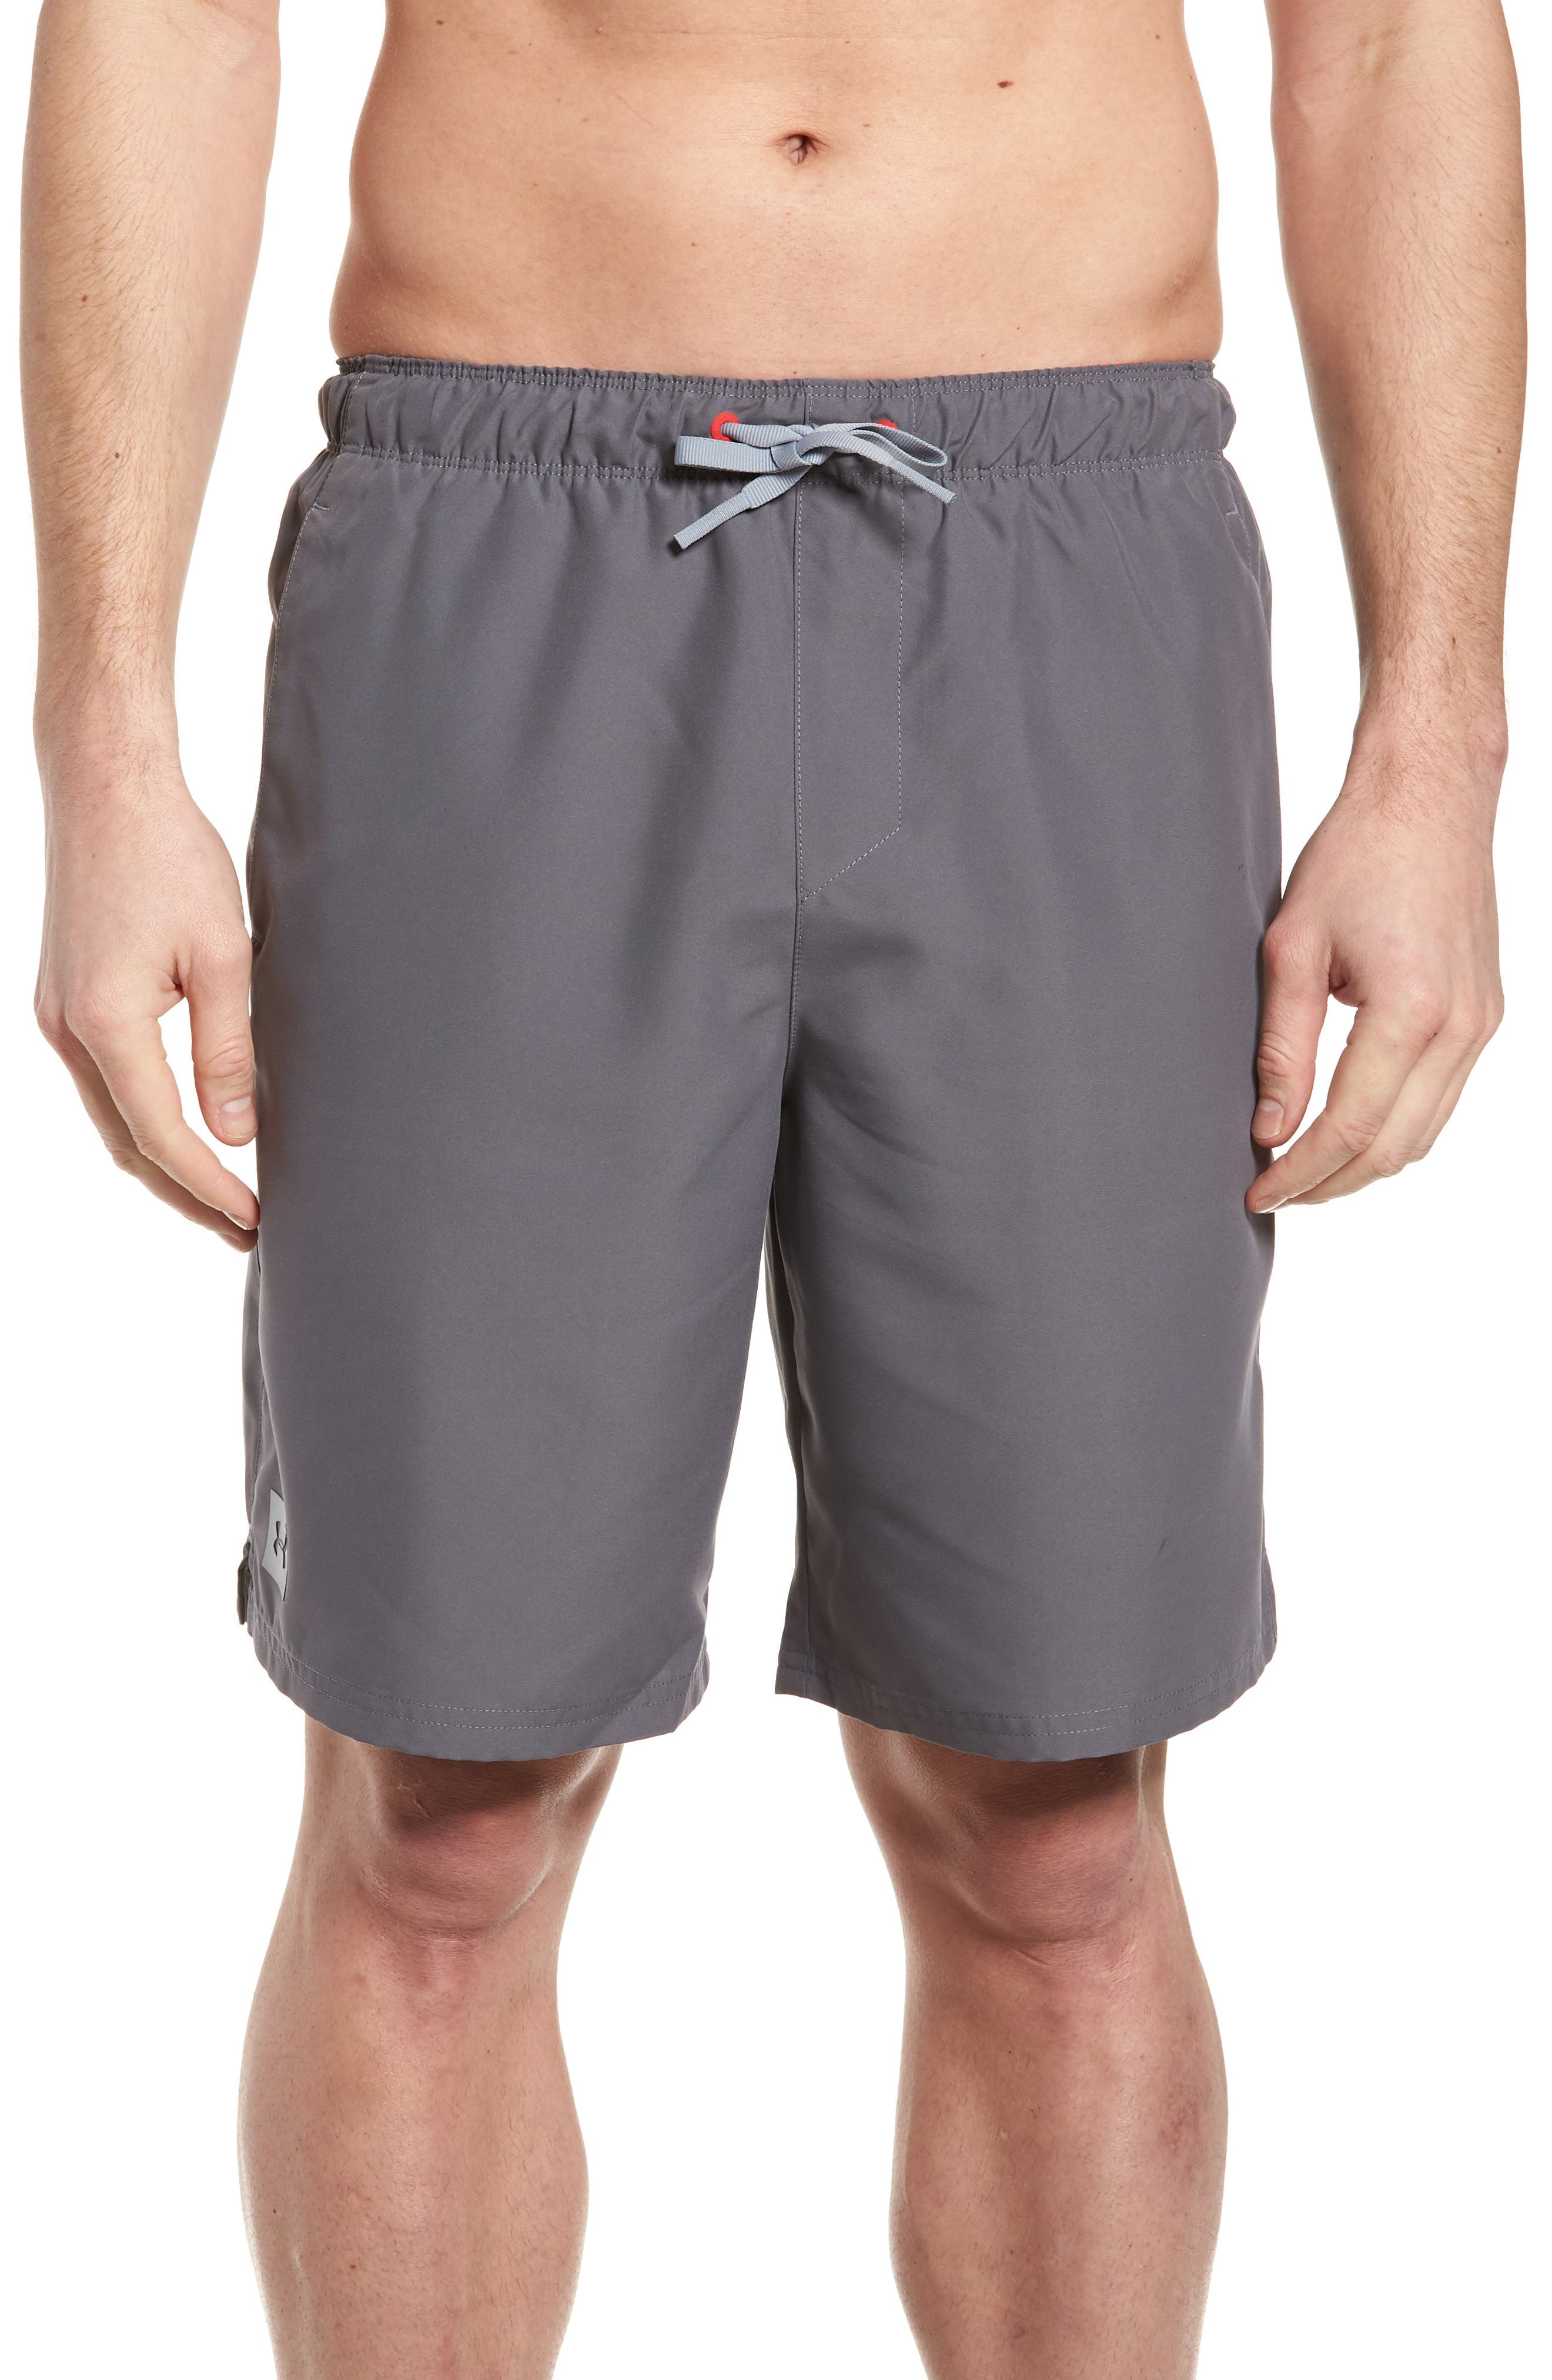 Mania Athletic Shorts,                         Main,                         color, Graphite / Pierce / Grey